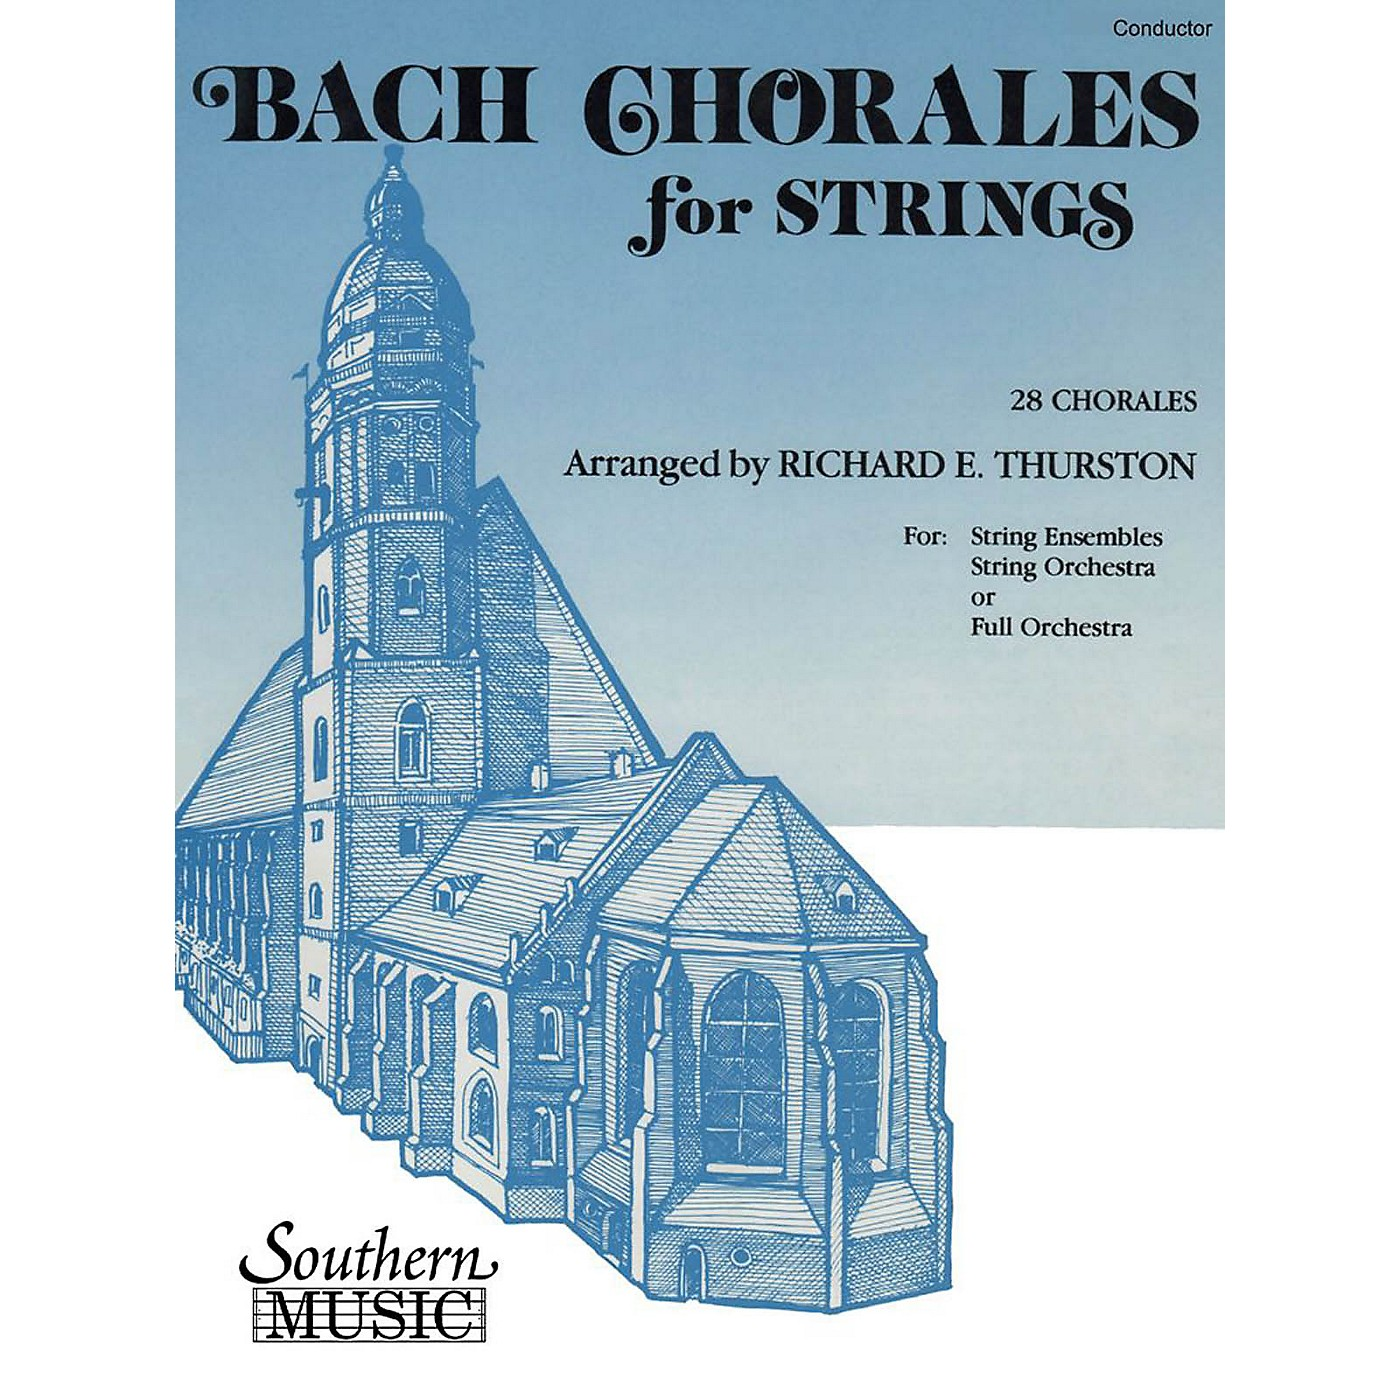 Southern Bach Chorales for Strings (28 Chorales) Southern Music by Bach Arranged by Richard E. Thurston thumbnail